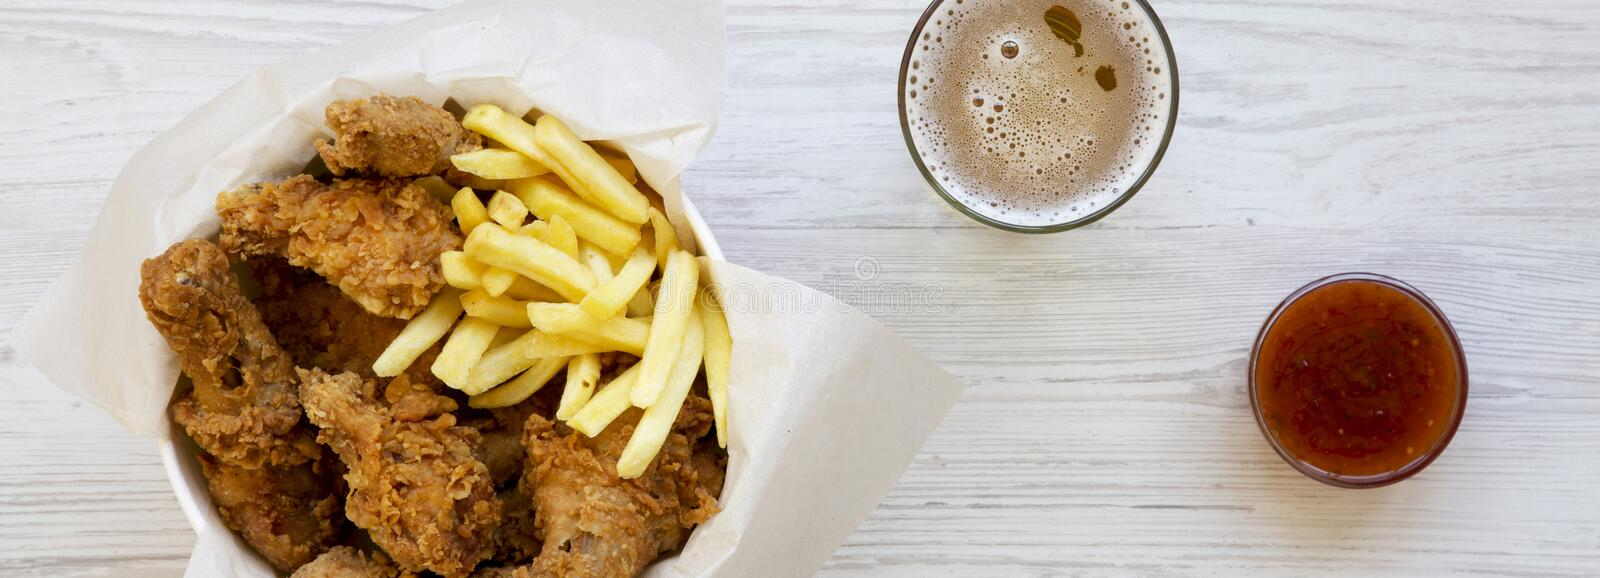 Tasty fastfood: fried chicken drumsticks, spicy wings, French fries and chicken tenders in paper box, sauce and cold beer on a. White wooden surface, overhead royalty free stock photos